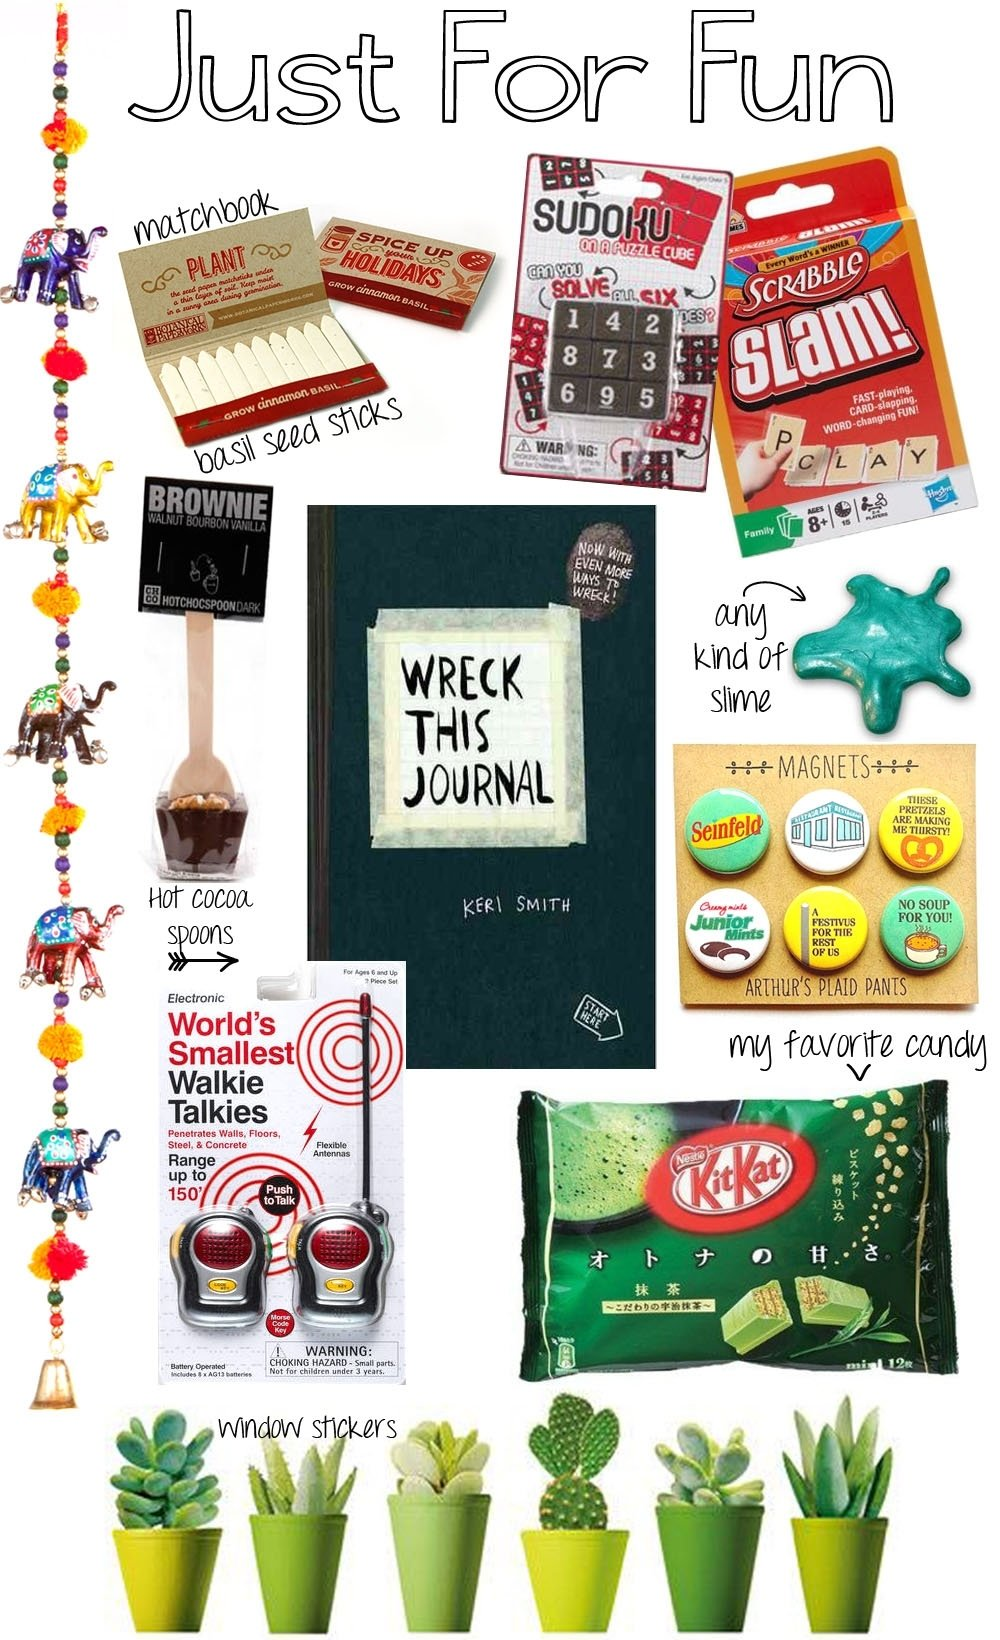 10 Amazing Stocking Stuffer Ideas For Wife stocking stuffers for her making mondays 10